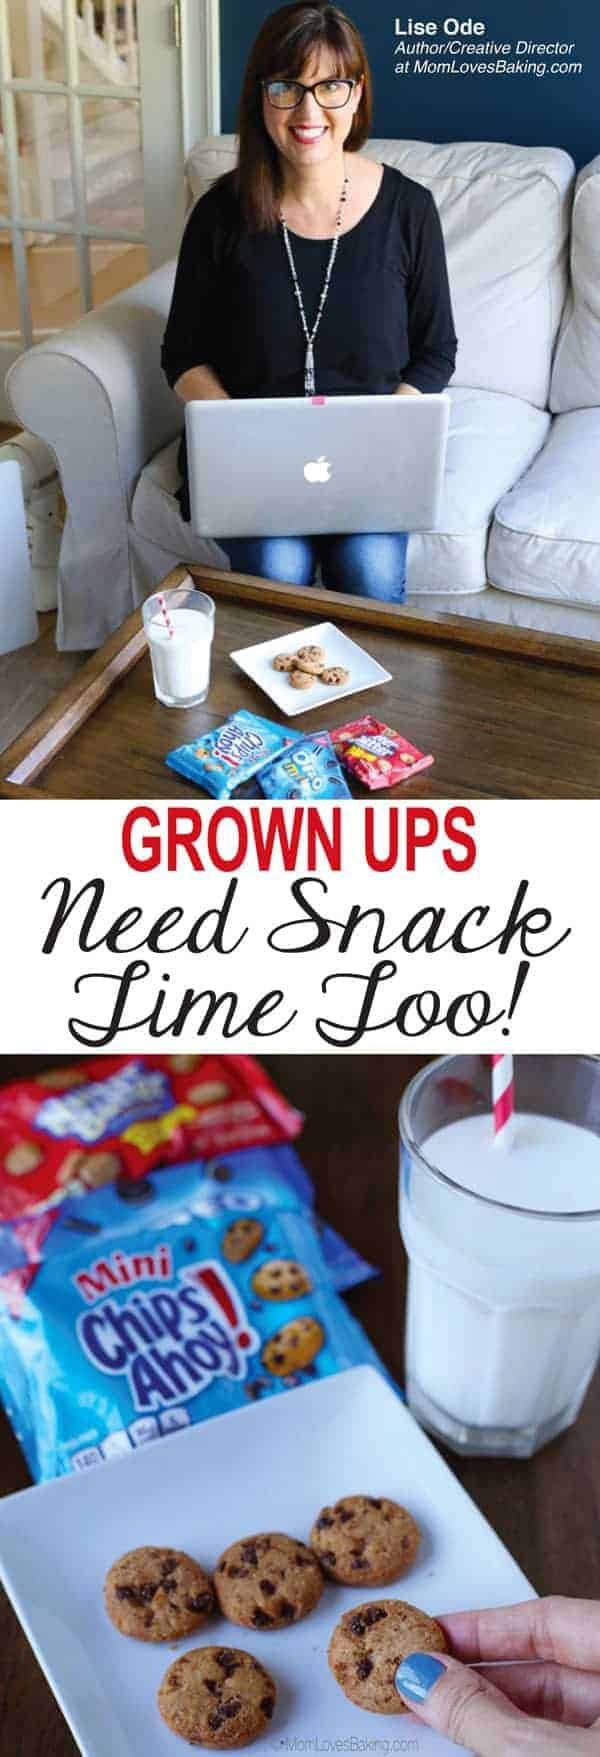 Grown ups need snack time too